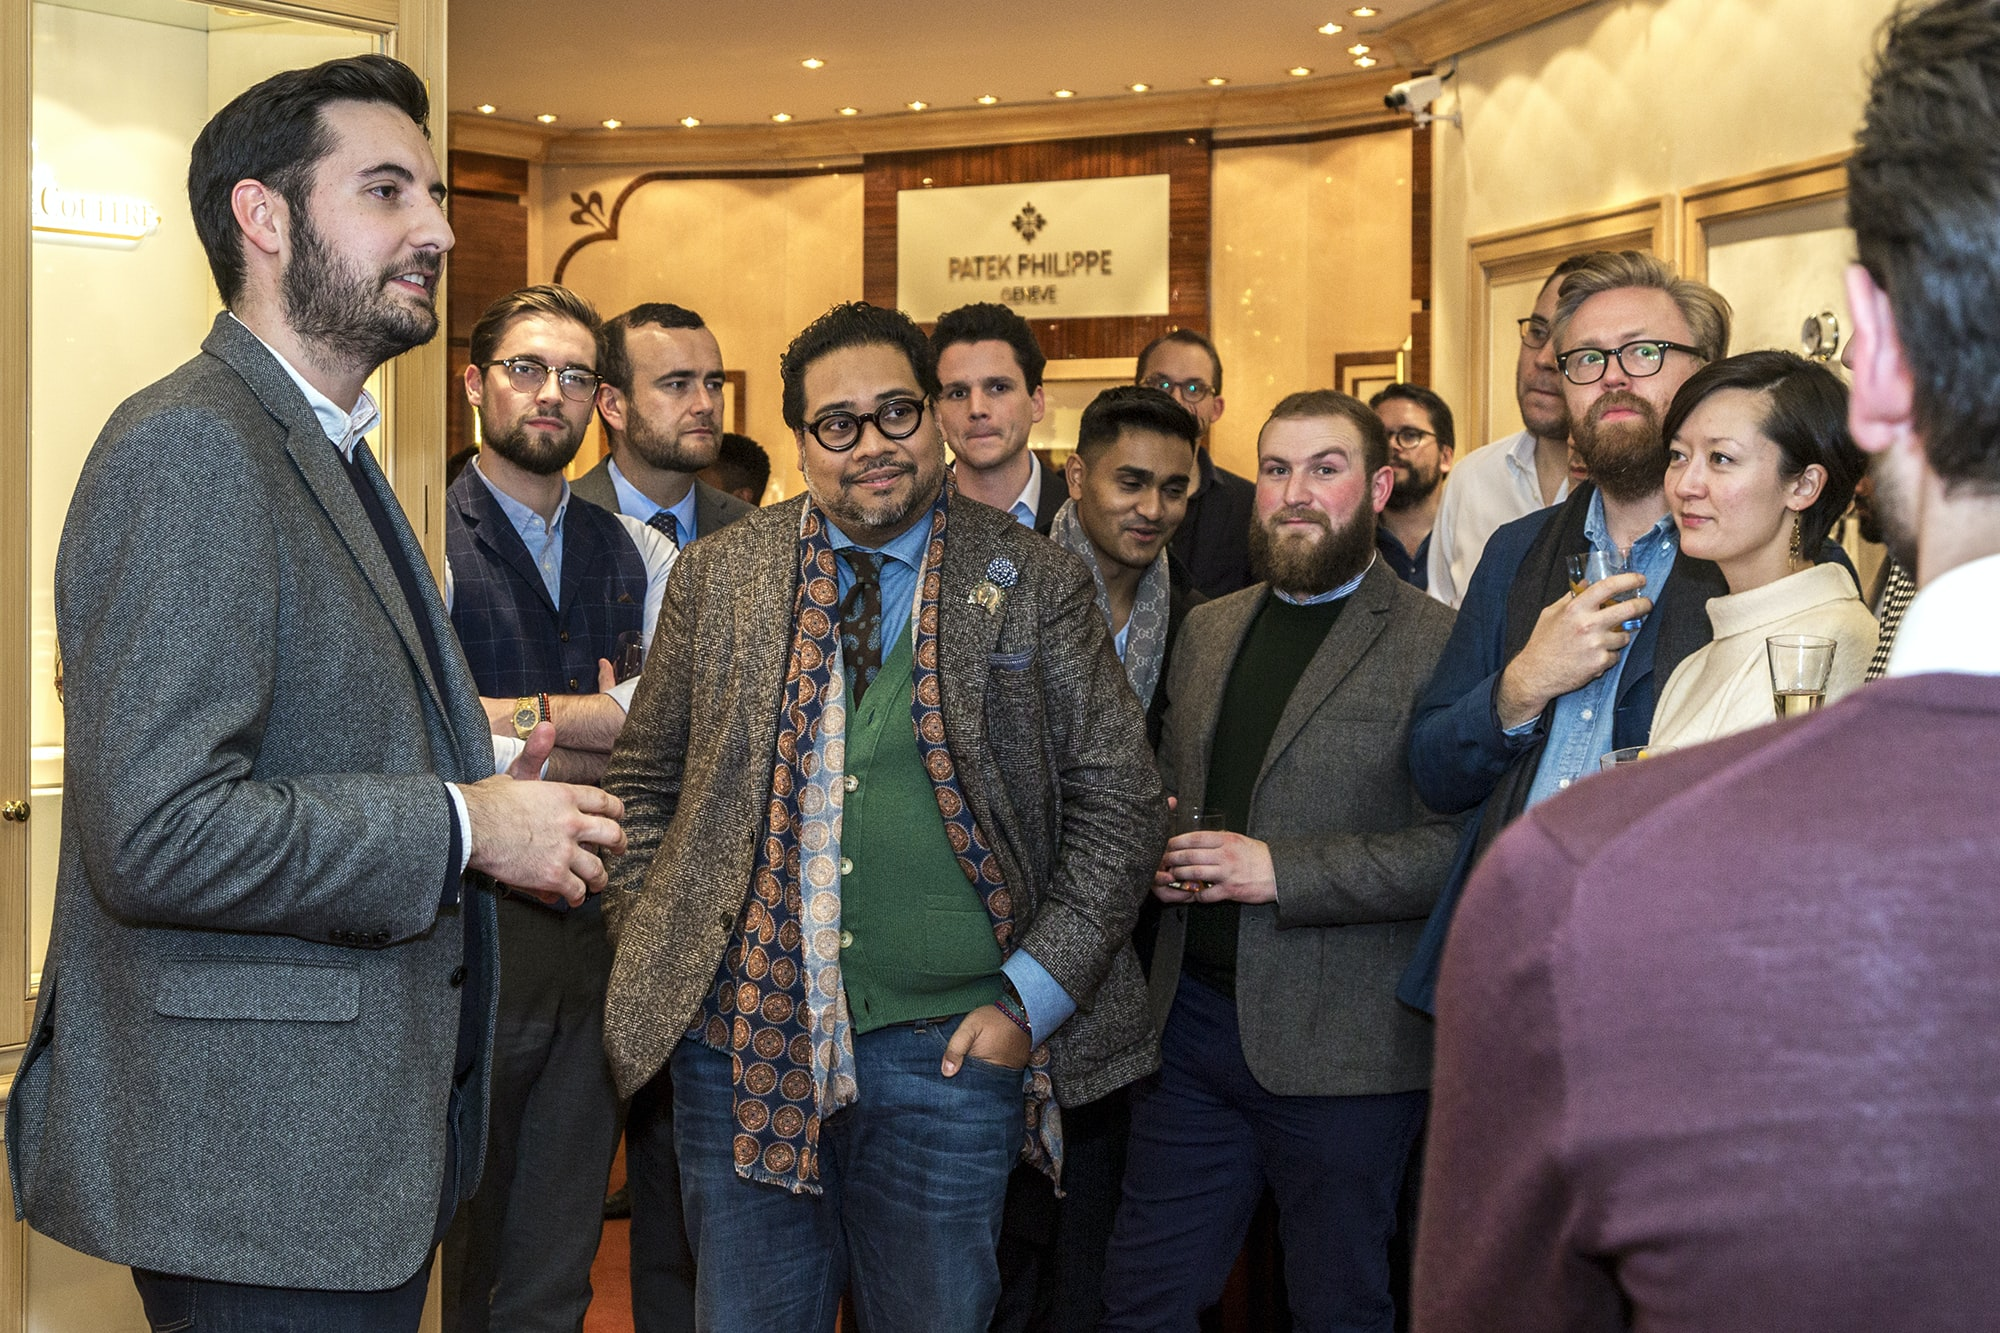 Photo Report: HODINKEE Hosts A Collector Get-Together At The Wempe Boutique In London Photo Report: HODINKEE Hosts A Collector Get-Together At The Wempe Boutique In London df